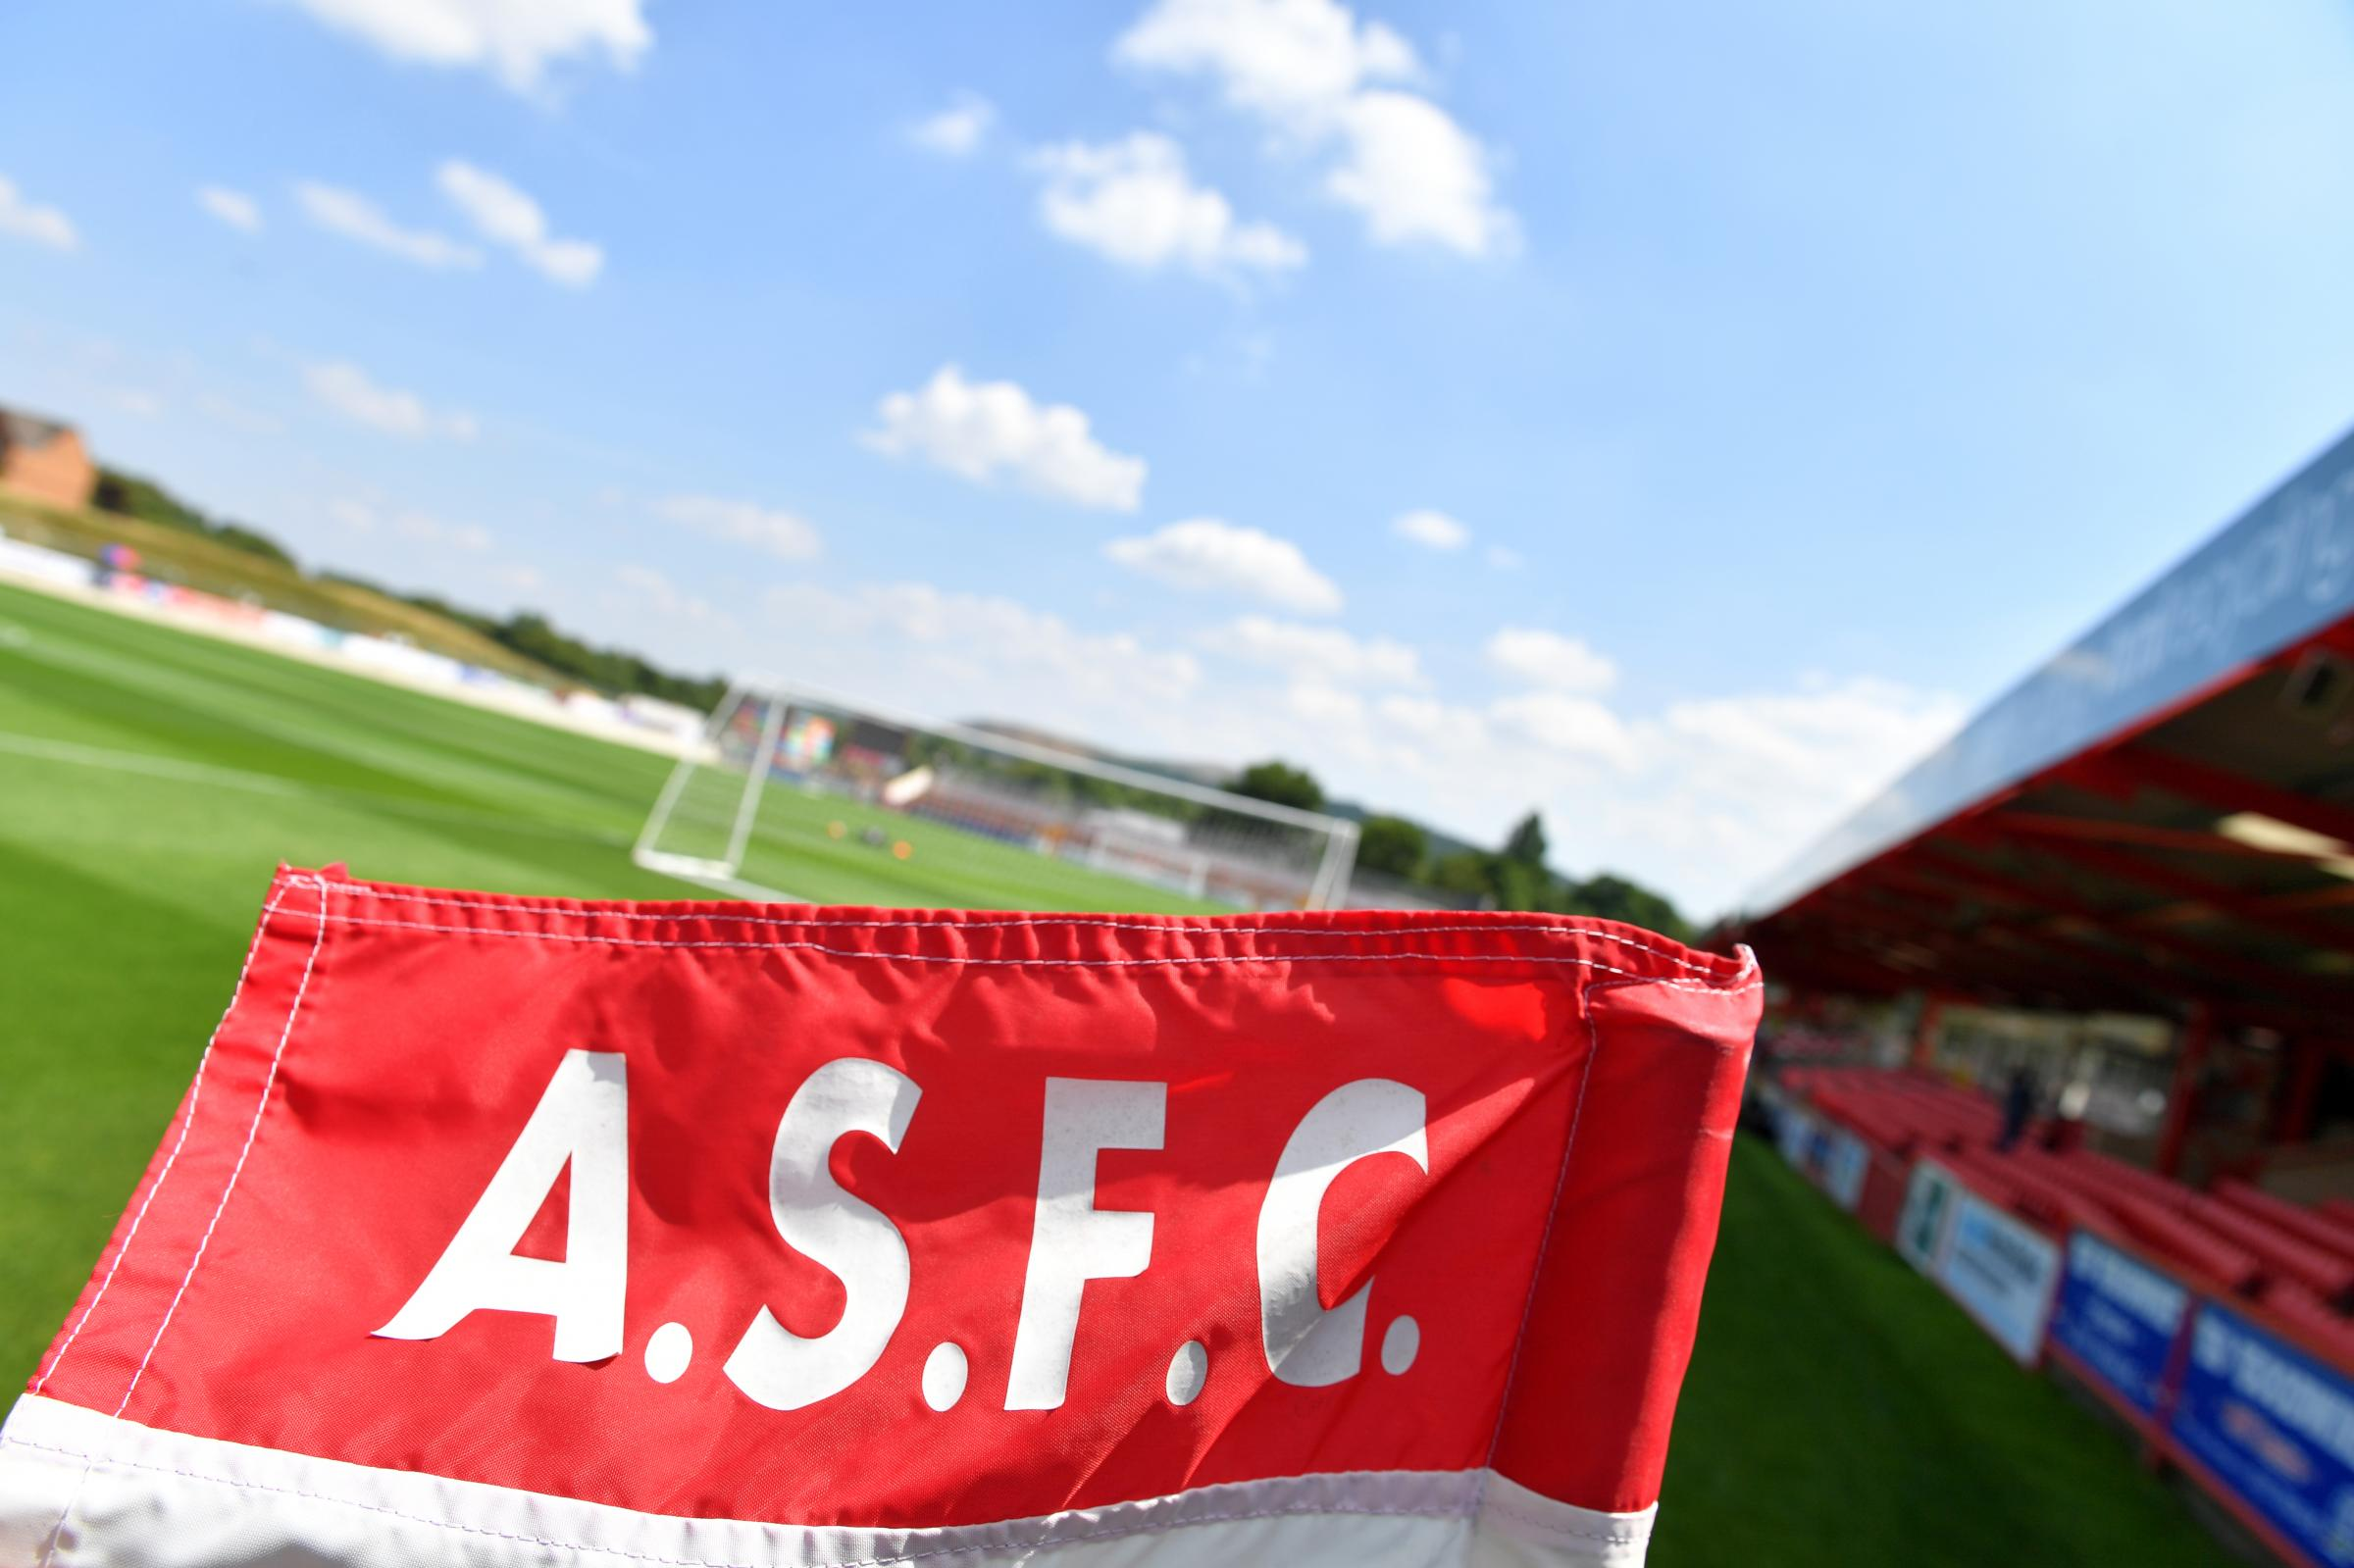 Accrington Stanley v Saints or Derby County will be televised